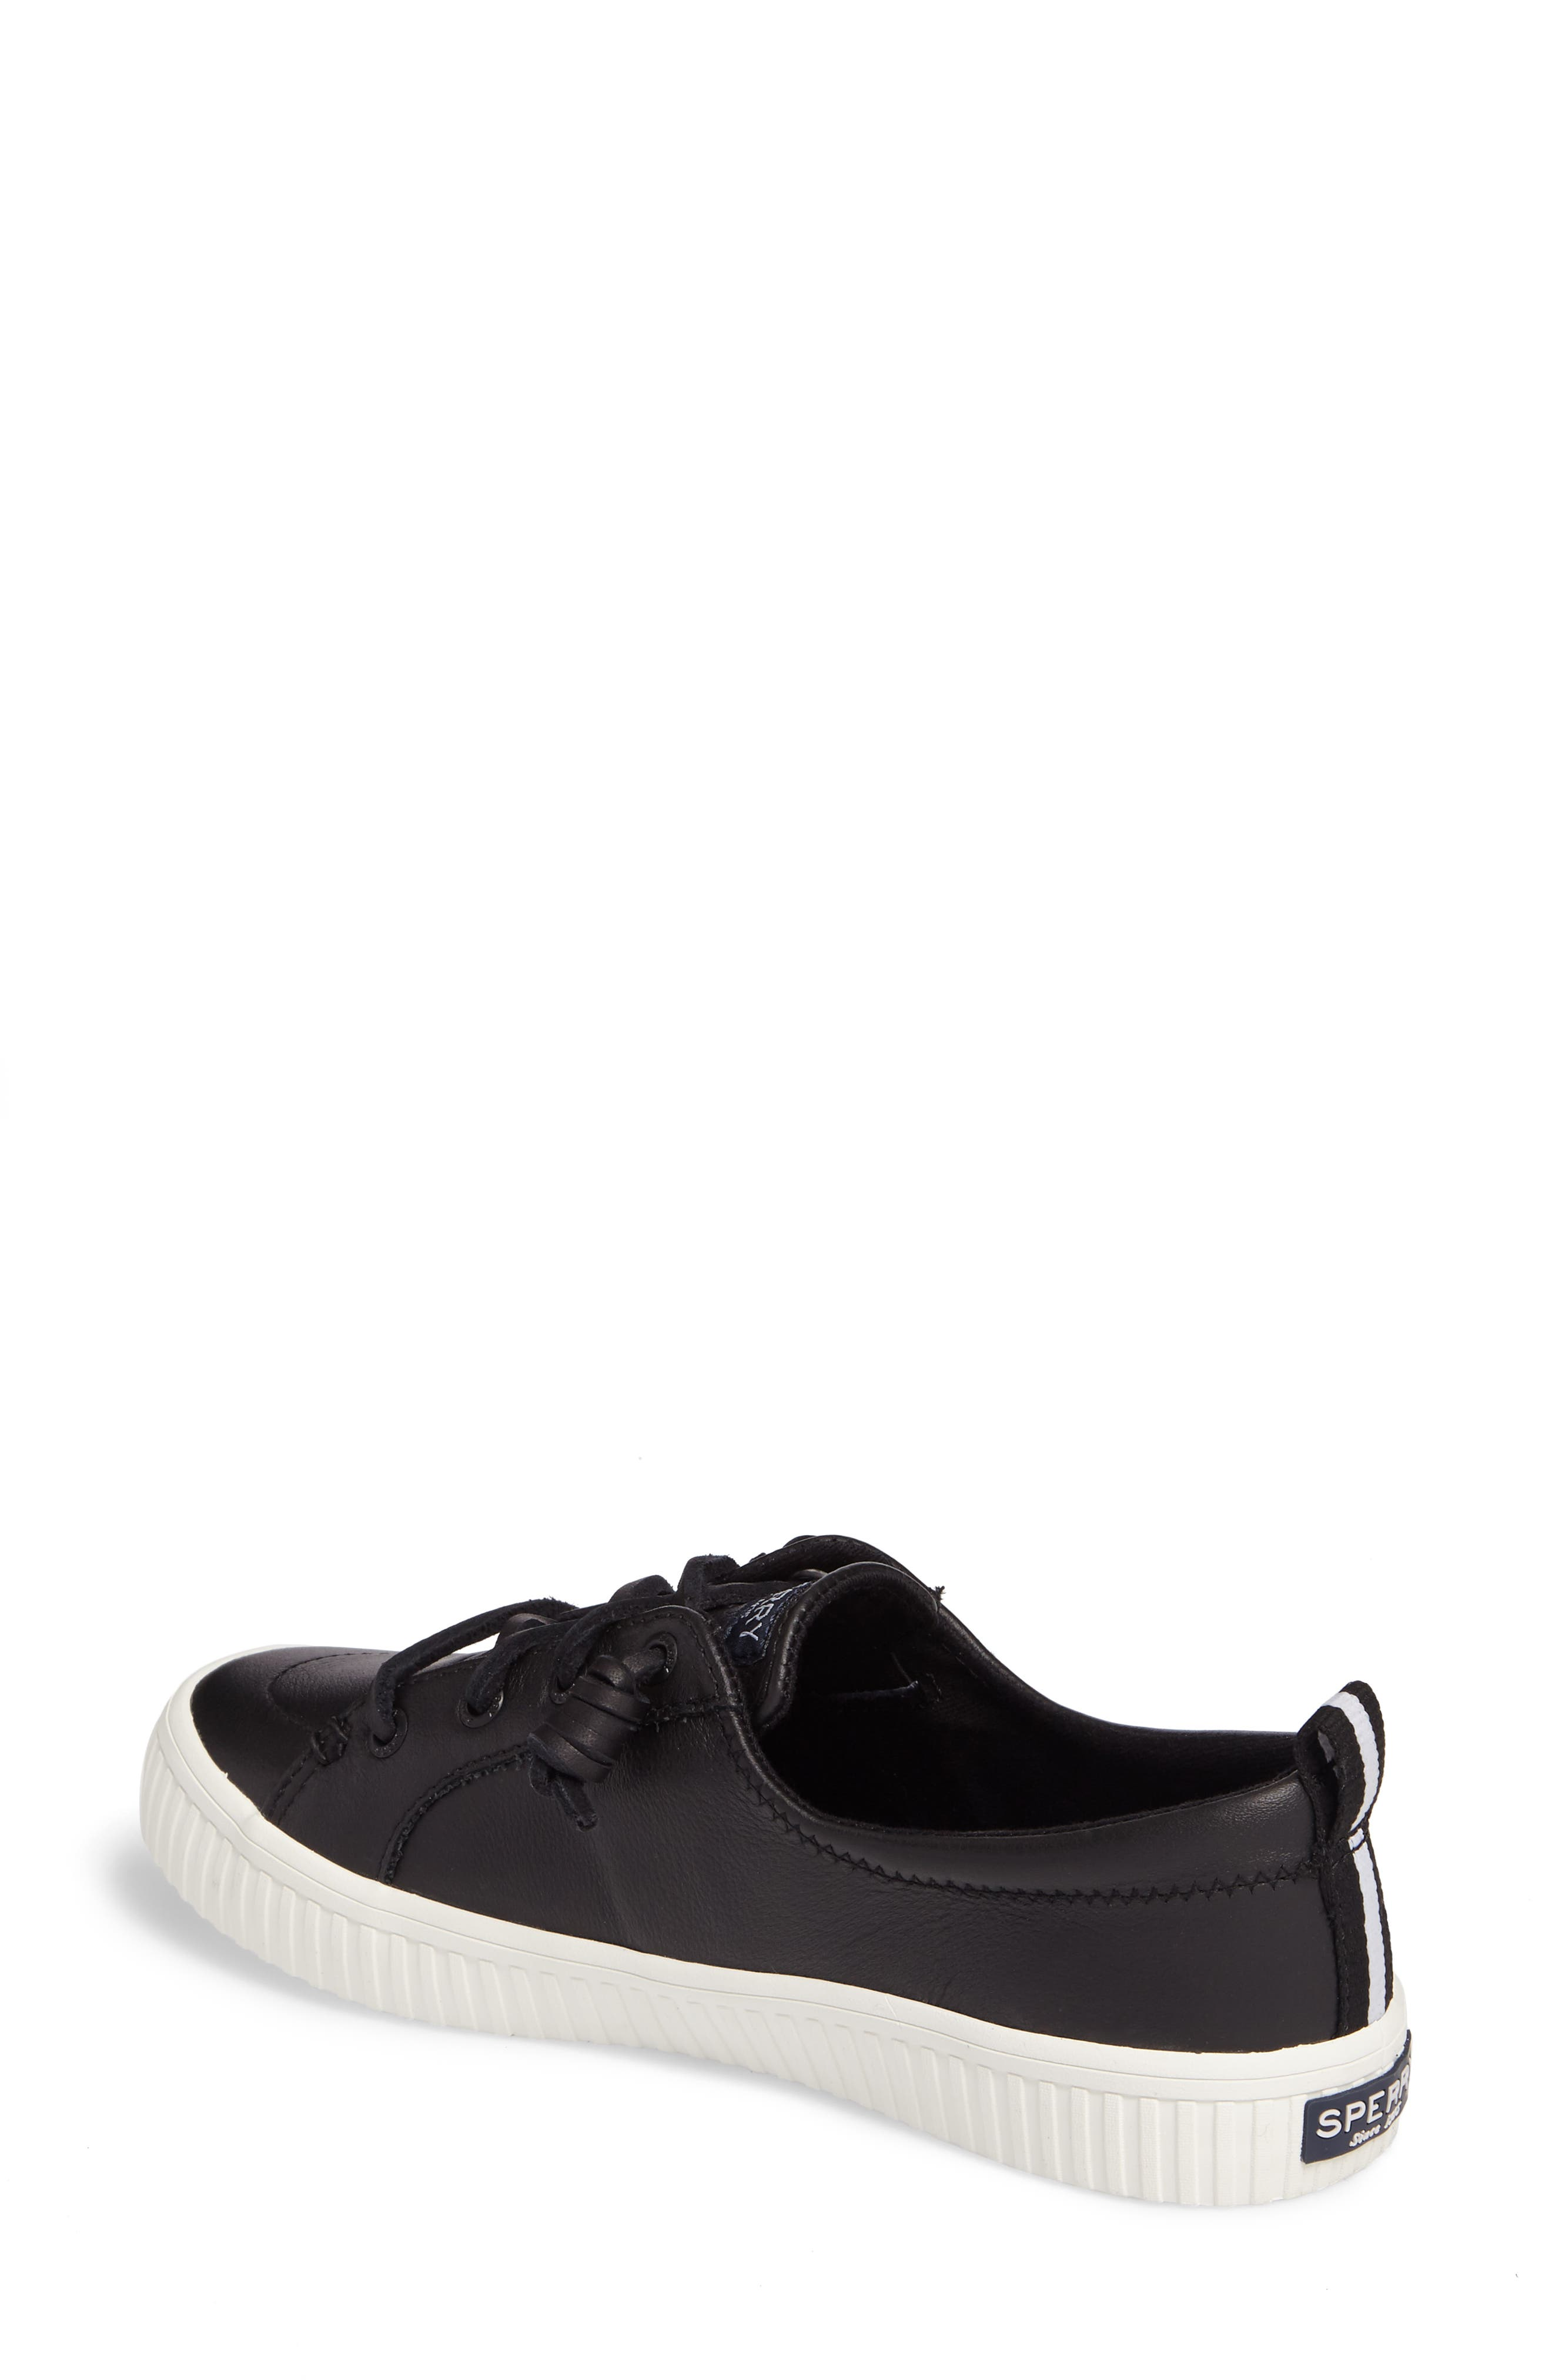 Crest Vibe Creeper Sneaker,                             Alternate thumbnail 2, color,                             Black Leather